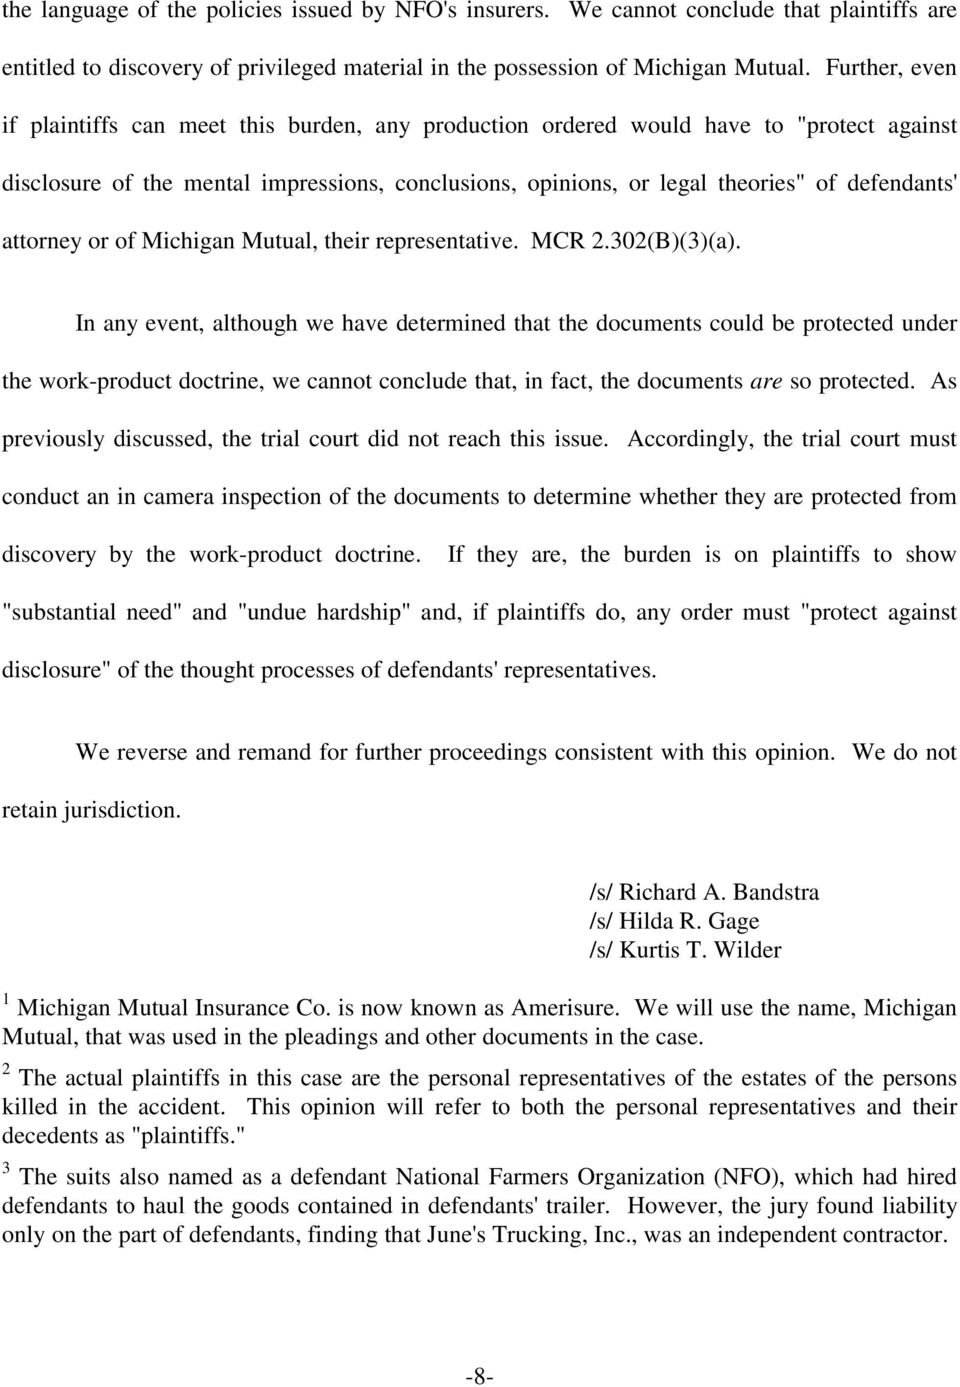 attorney or of Michigan Mutual, their representative. MCR 2.302(B)(3)(a).